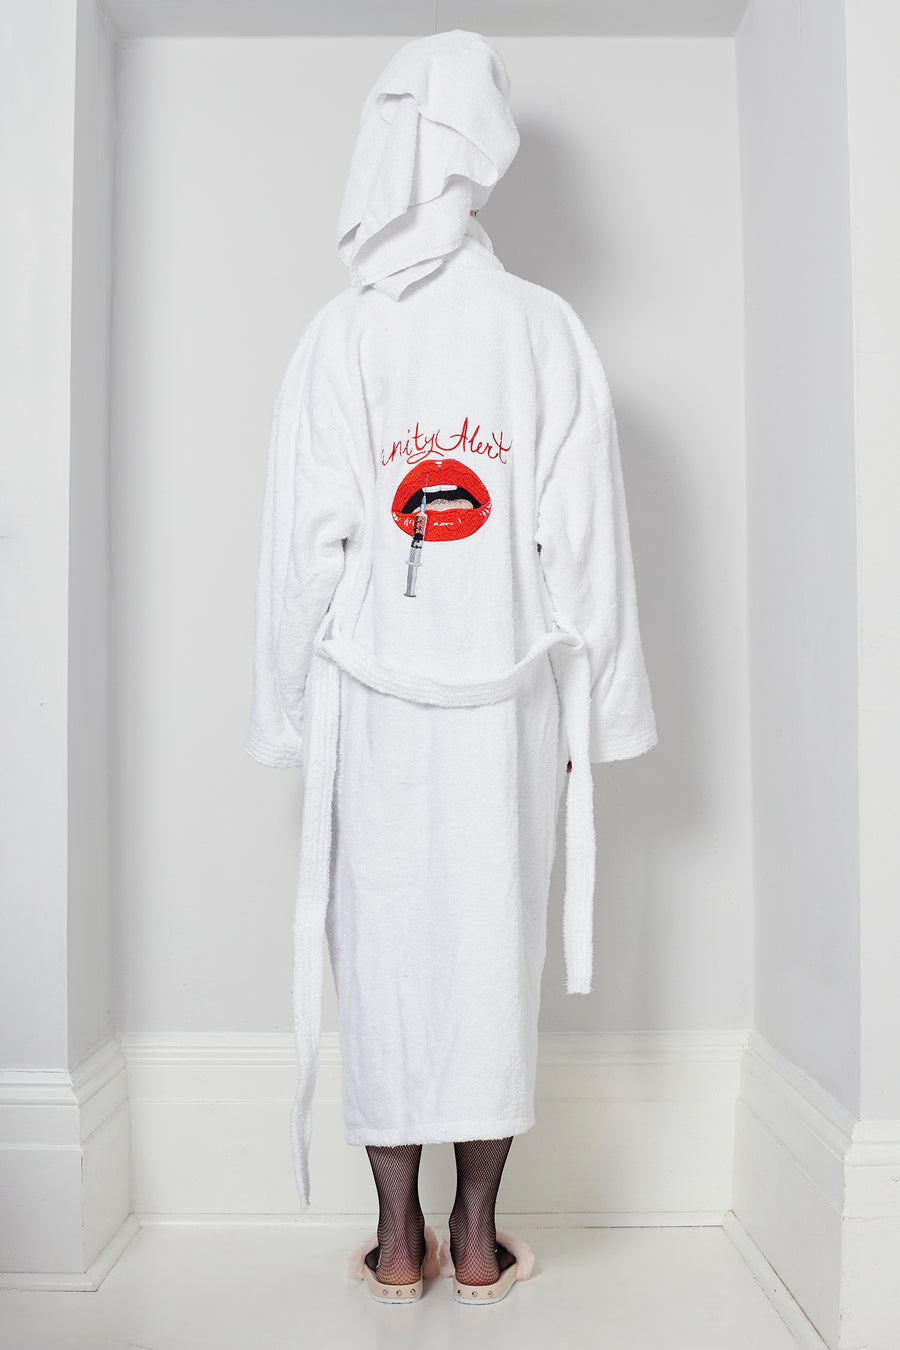 LOT 005 -  BATHROBE 'VANITY ALERT'